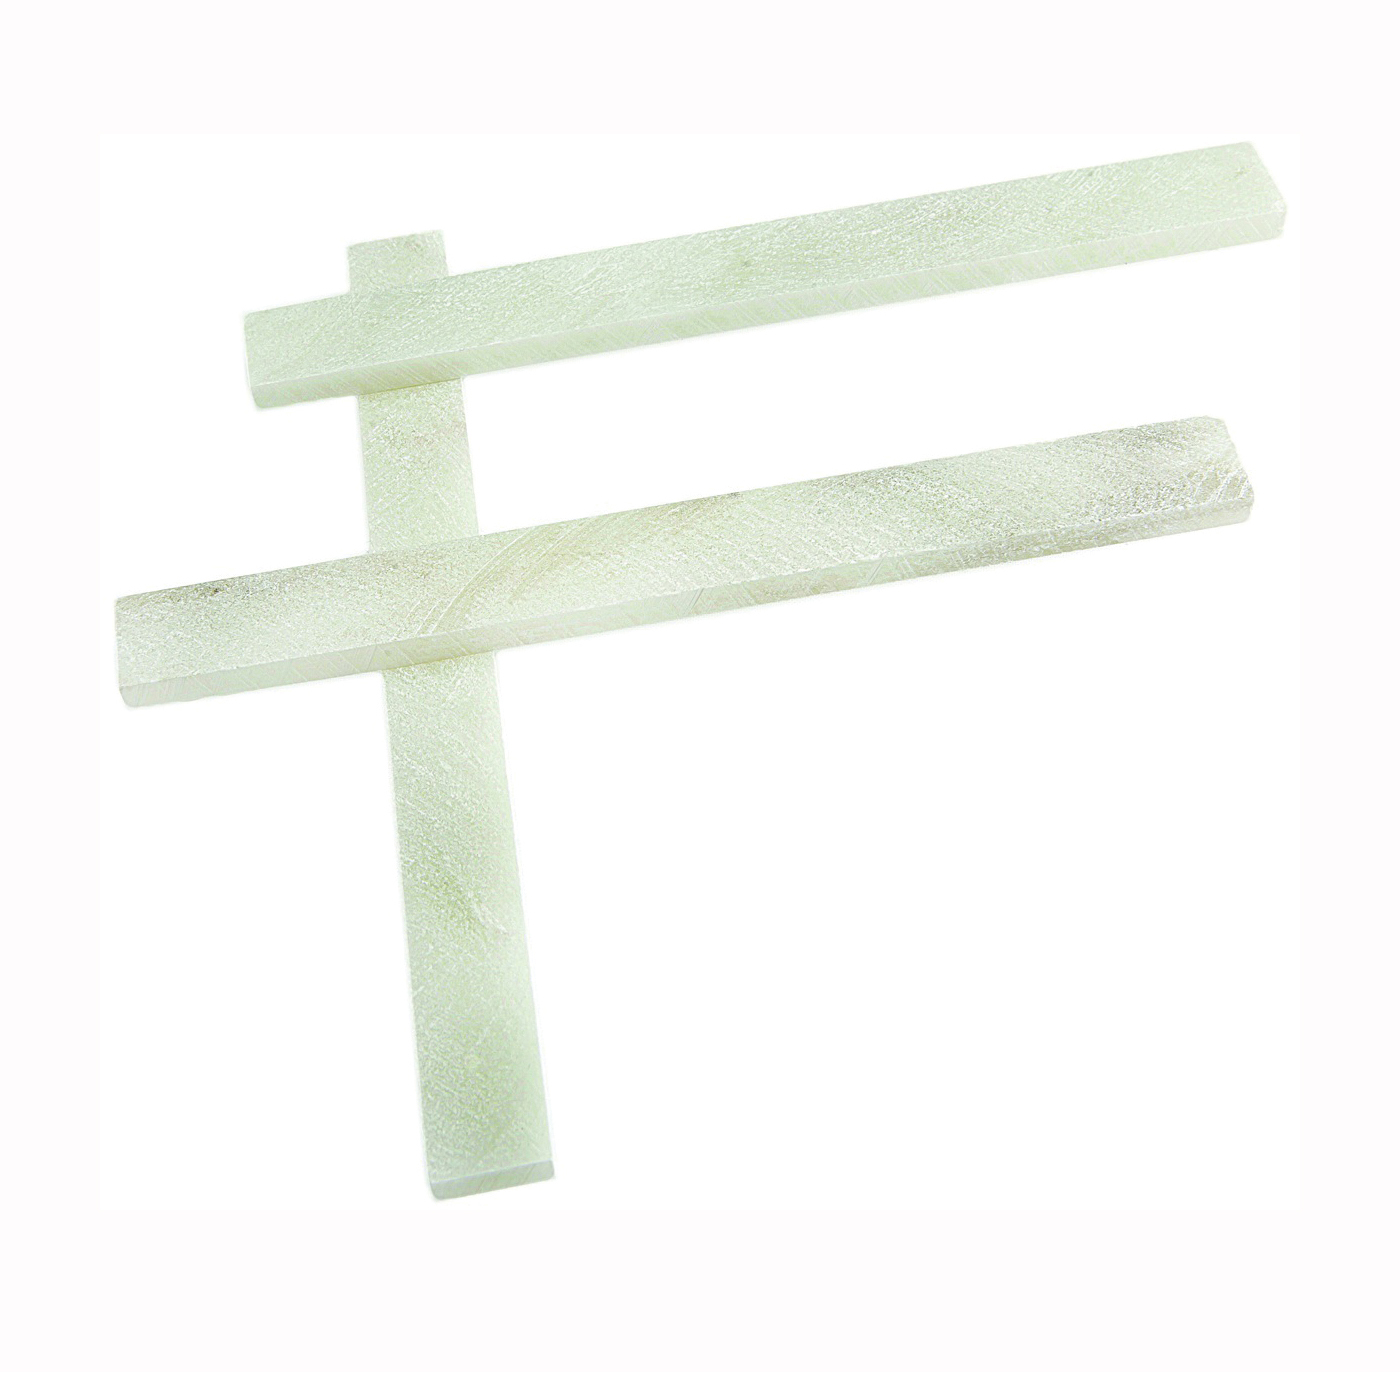 Picture of Forney 60306 Flat Soapstone Pencil Refill, White